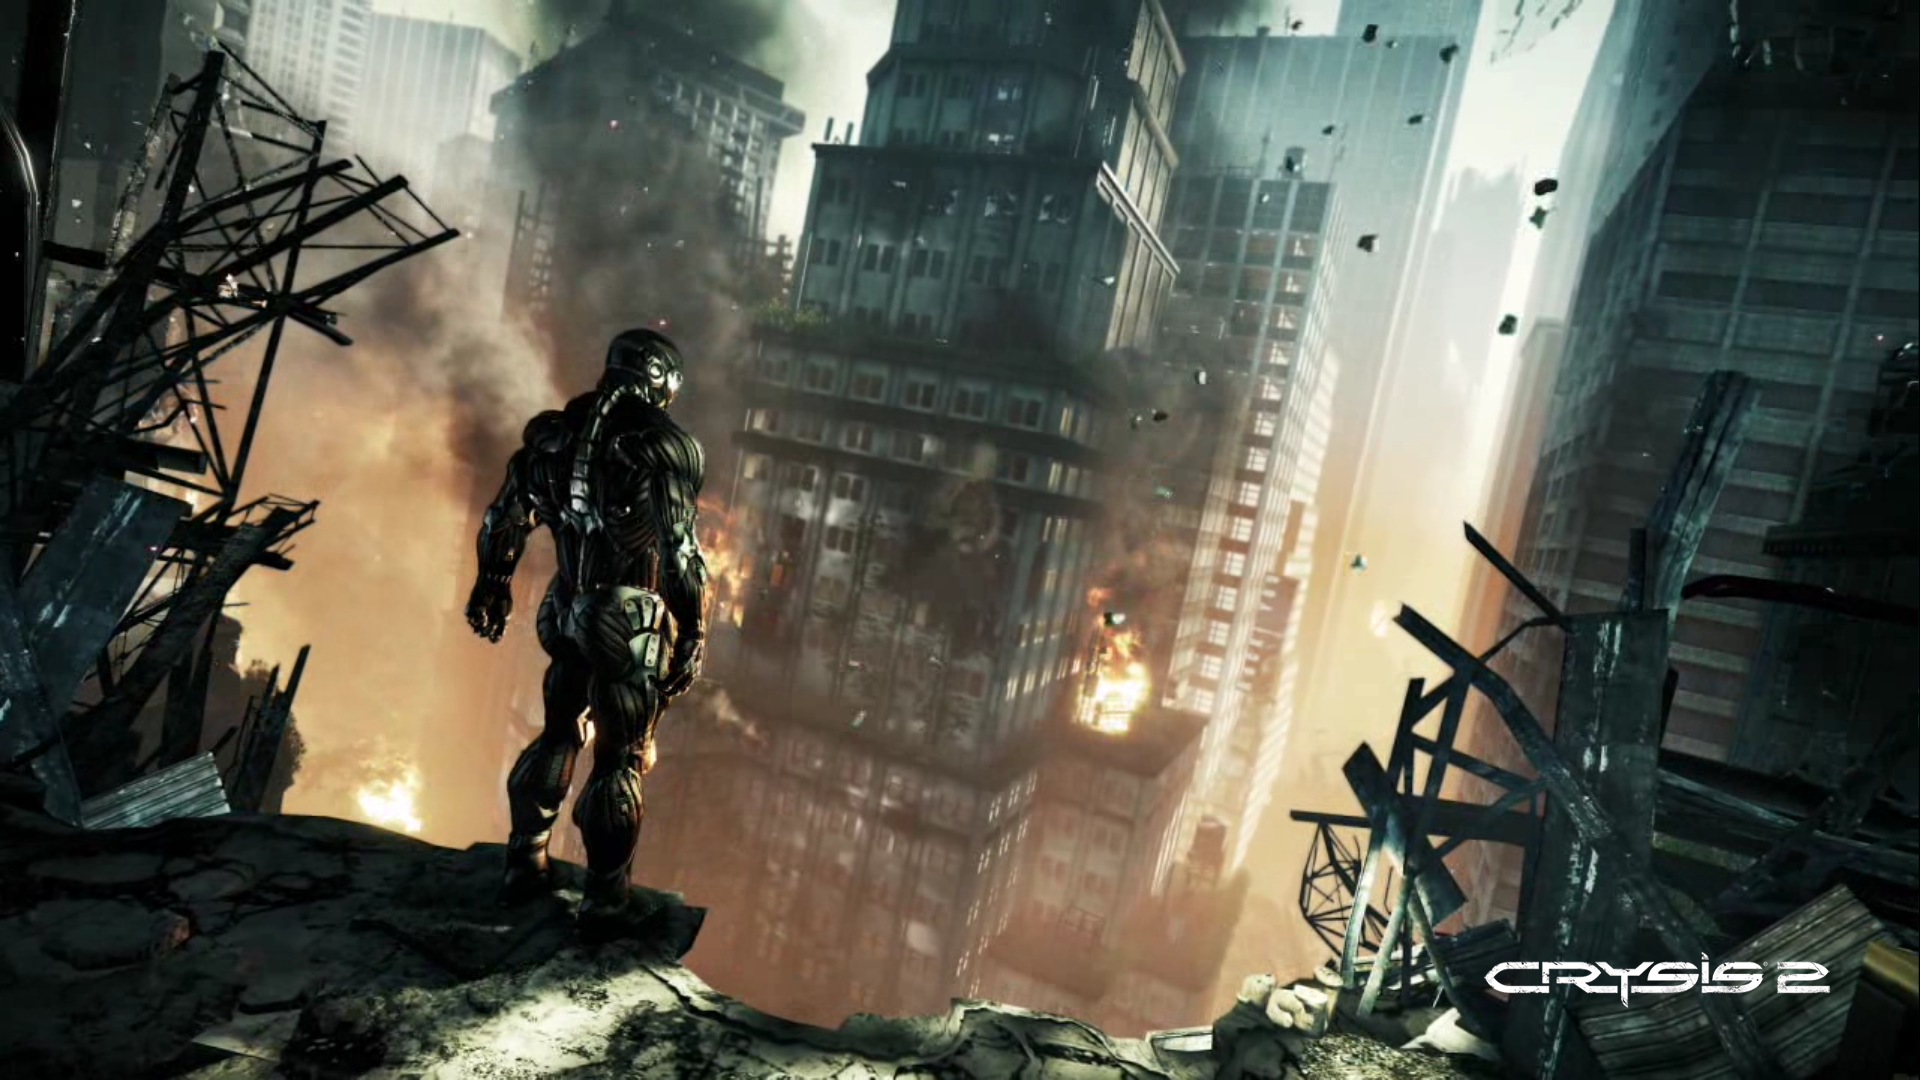 Crysis 2 Wallpaper Standing City HD Wallpaper Games Wallpapers 1920x1080